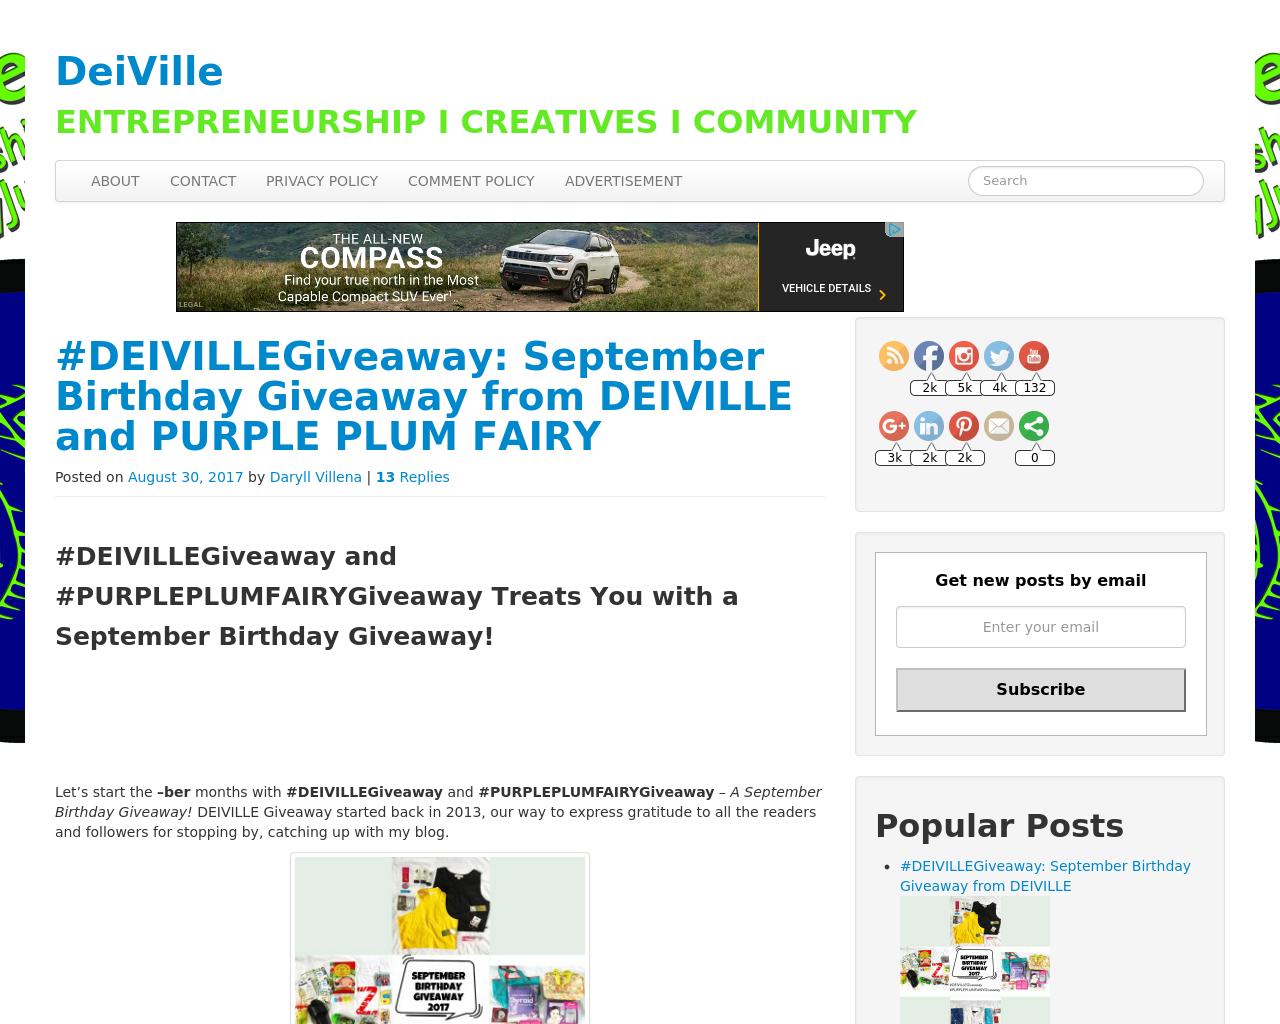 Deiville-Advertising-Reviews-Pricing